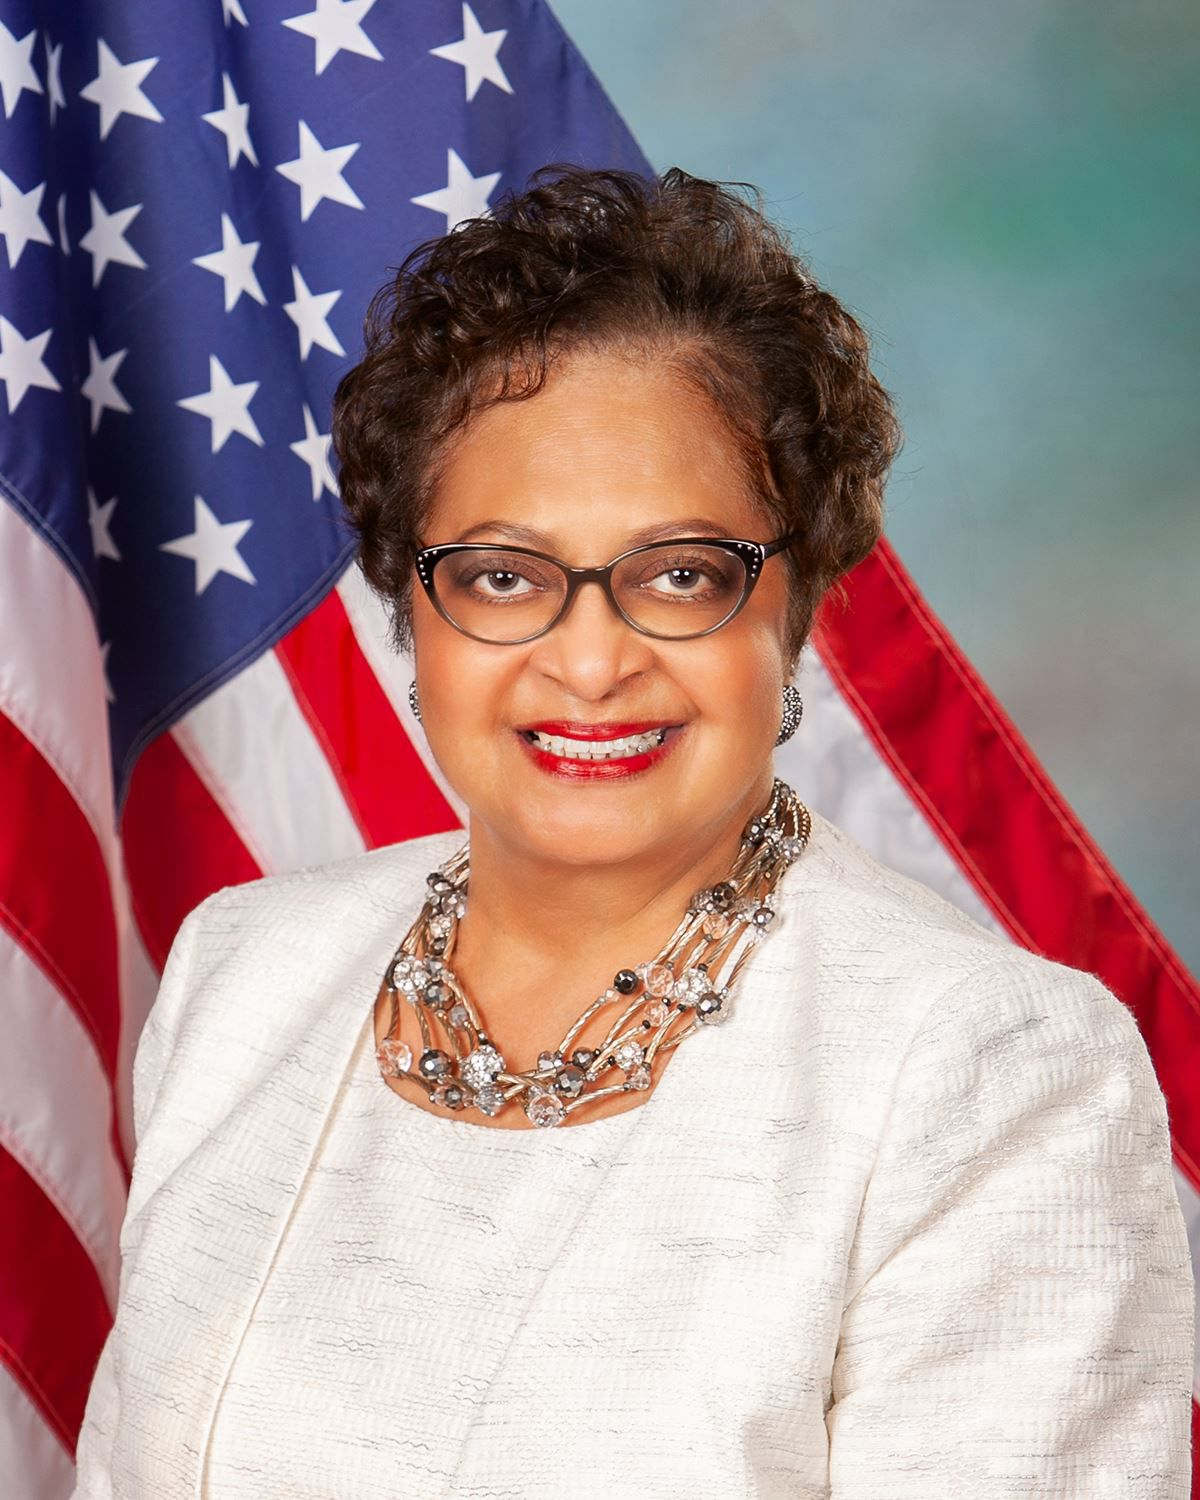 DeSoto Mayor Curtistene McCowan announced at a City Council meeting in early October that she had been diagnosed with cancer.